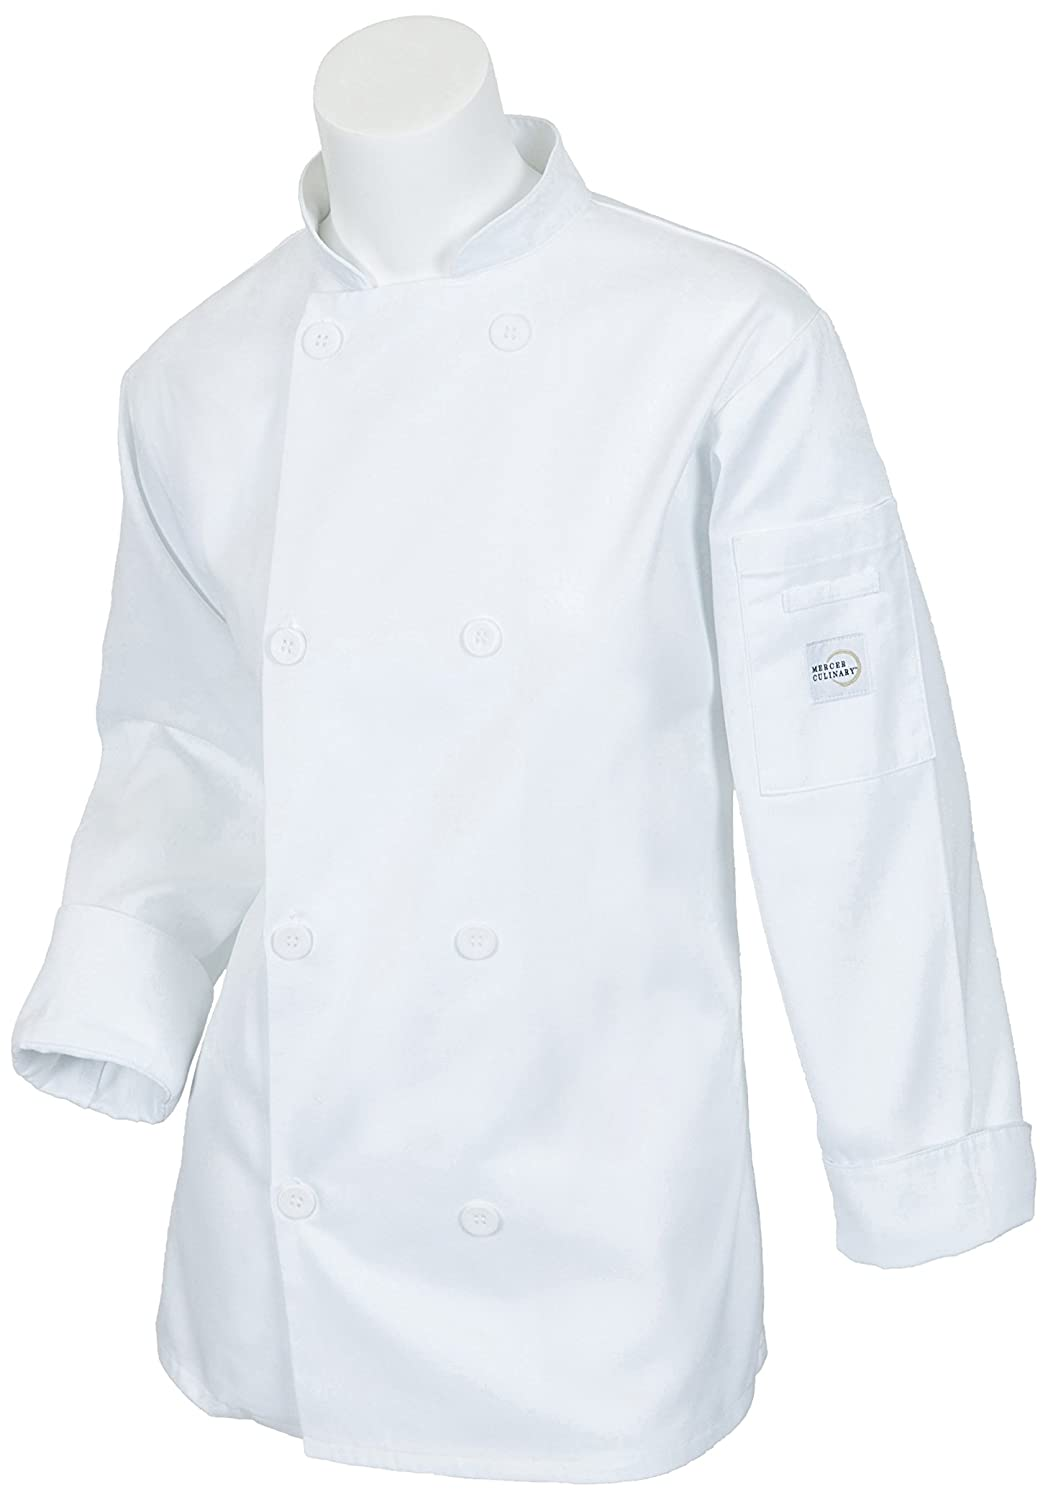 Mercer Culinary M60020WH1X Millennia Women's Cook Jacket with Mercer Logo Buttons, X-Large, White